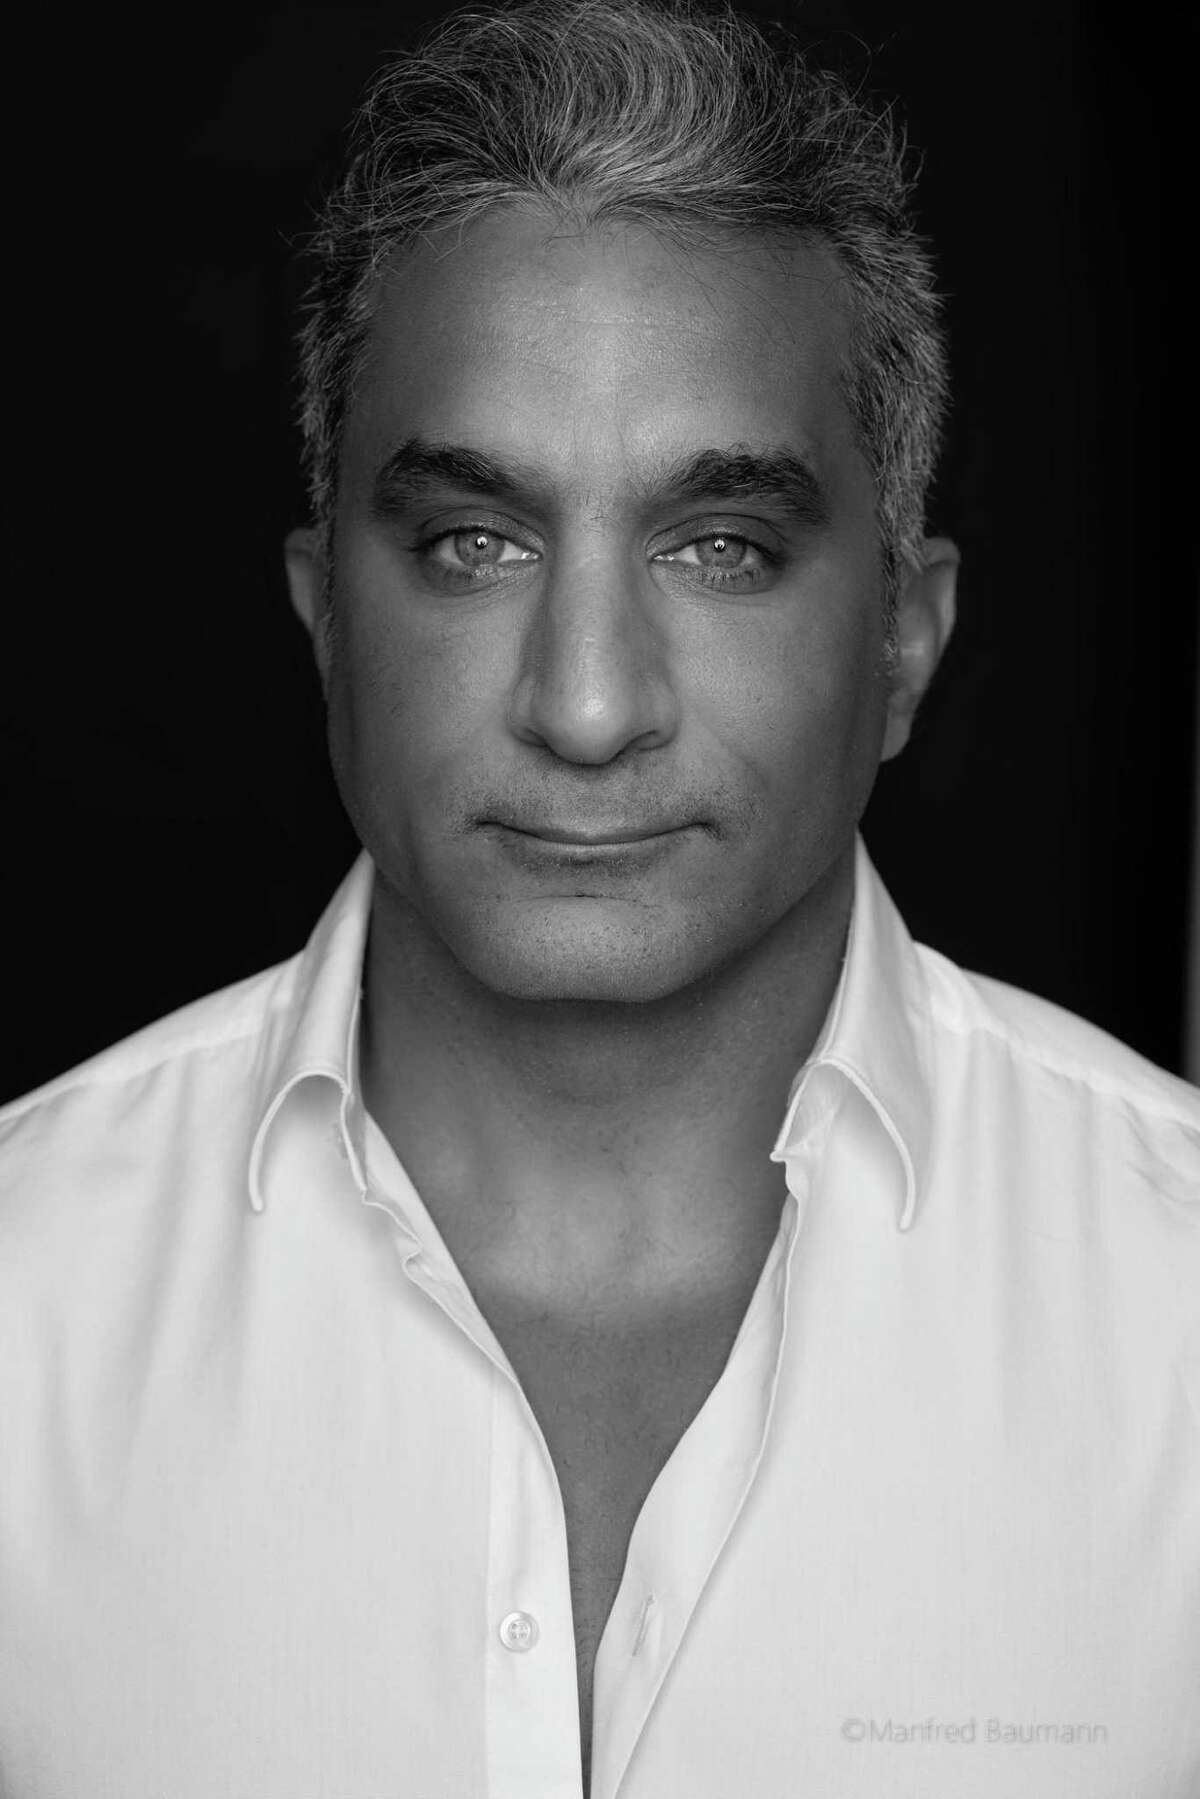 Bassem Youssef will perform at the Stress Factory in Bridgeport Feb. 11-13.